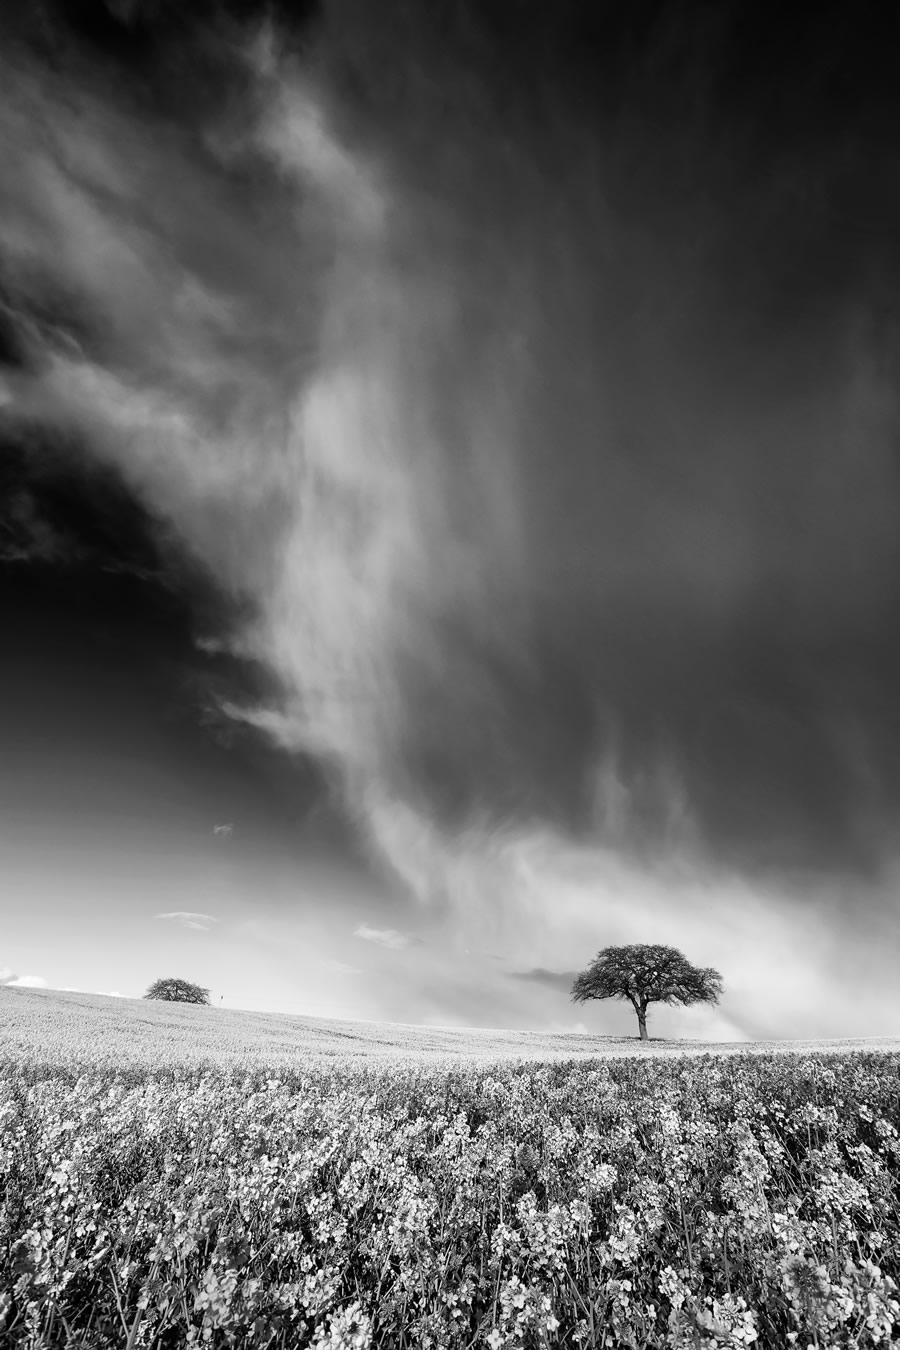 Expert 9th: 'Passing Storm' by Kathy Medcalf - Location: Nottinghamshire, England